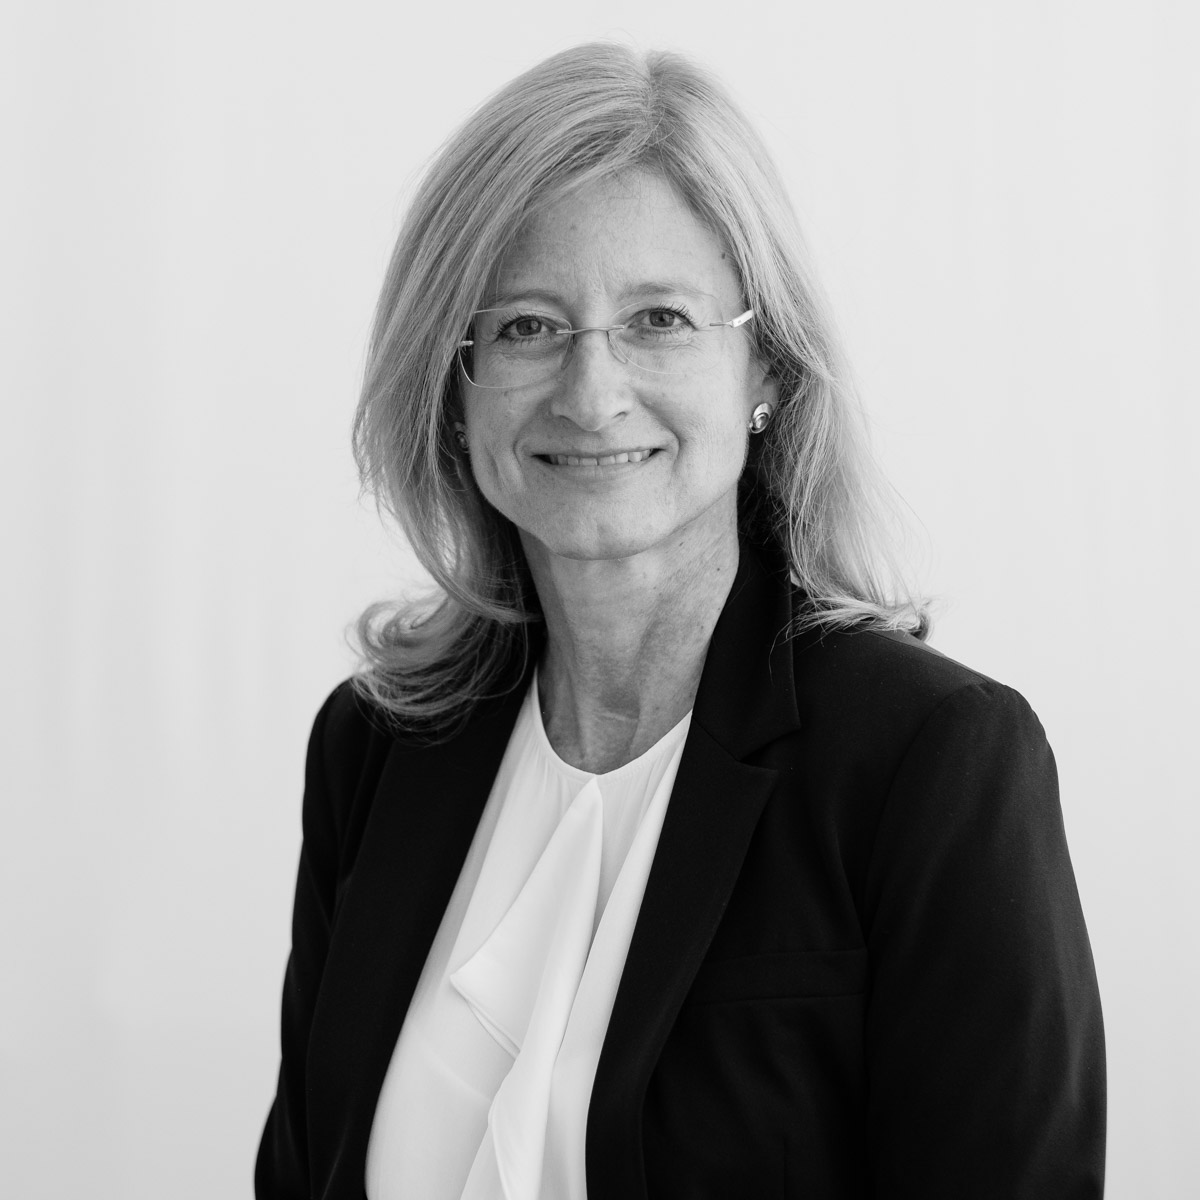 Mag. Eva Huber-Stockinger, MBA